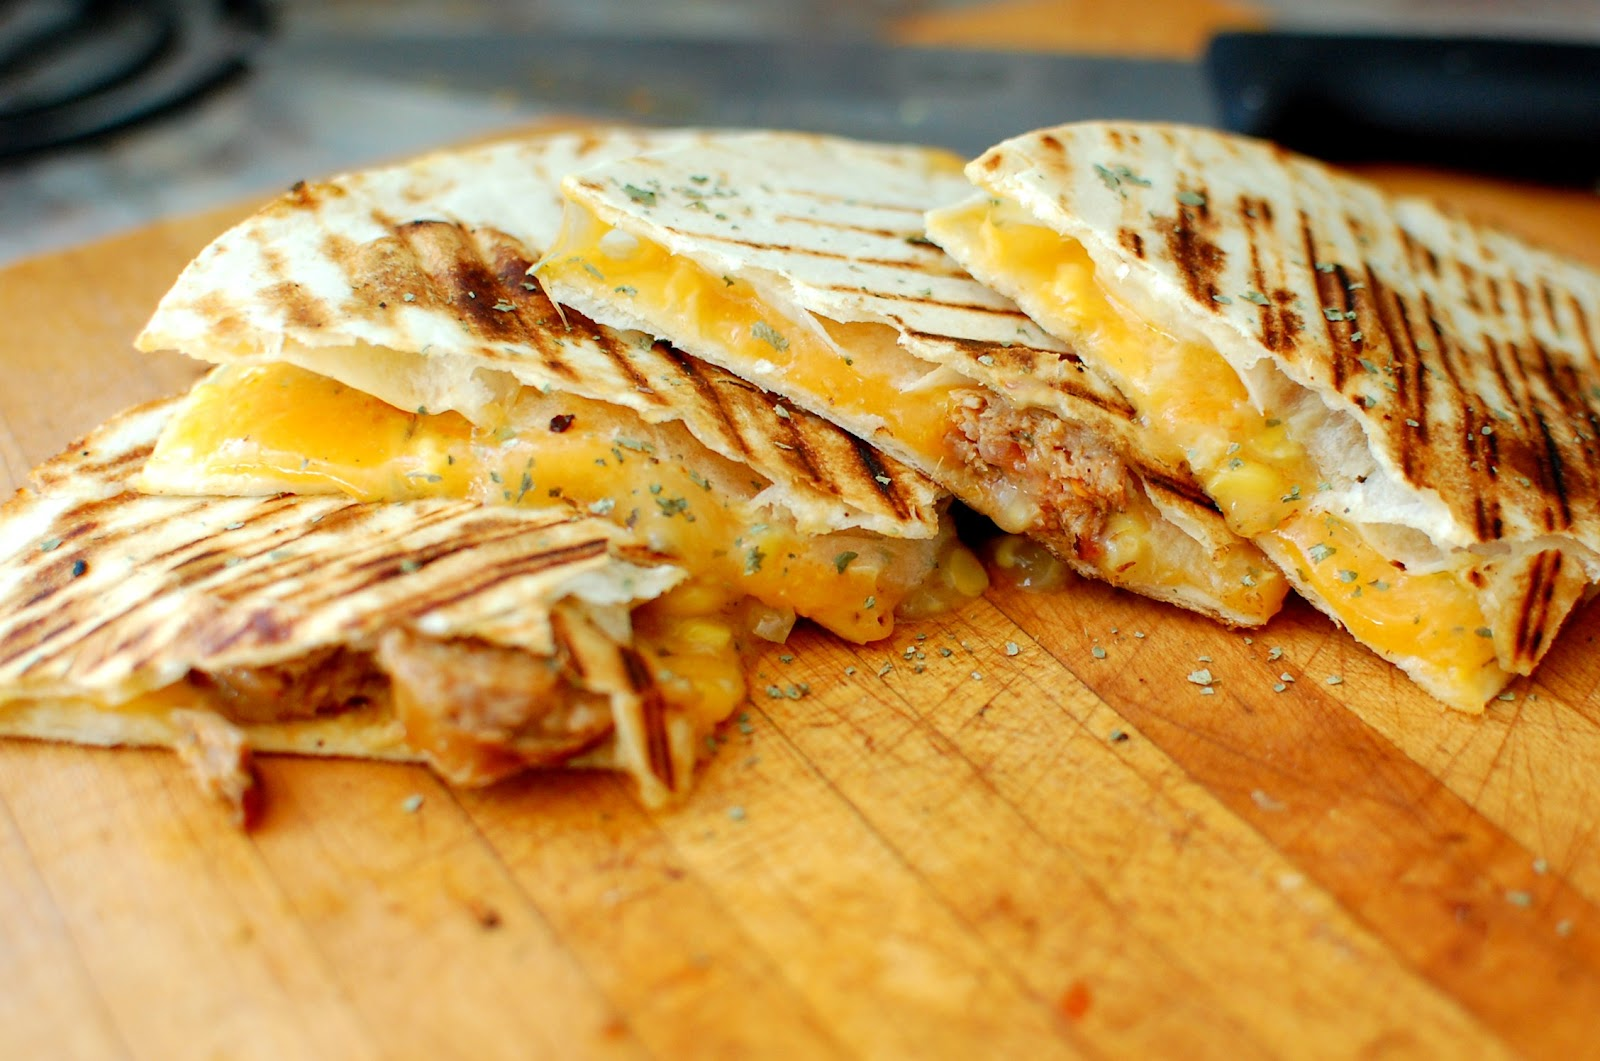 And Pineapple Quesadilla